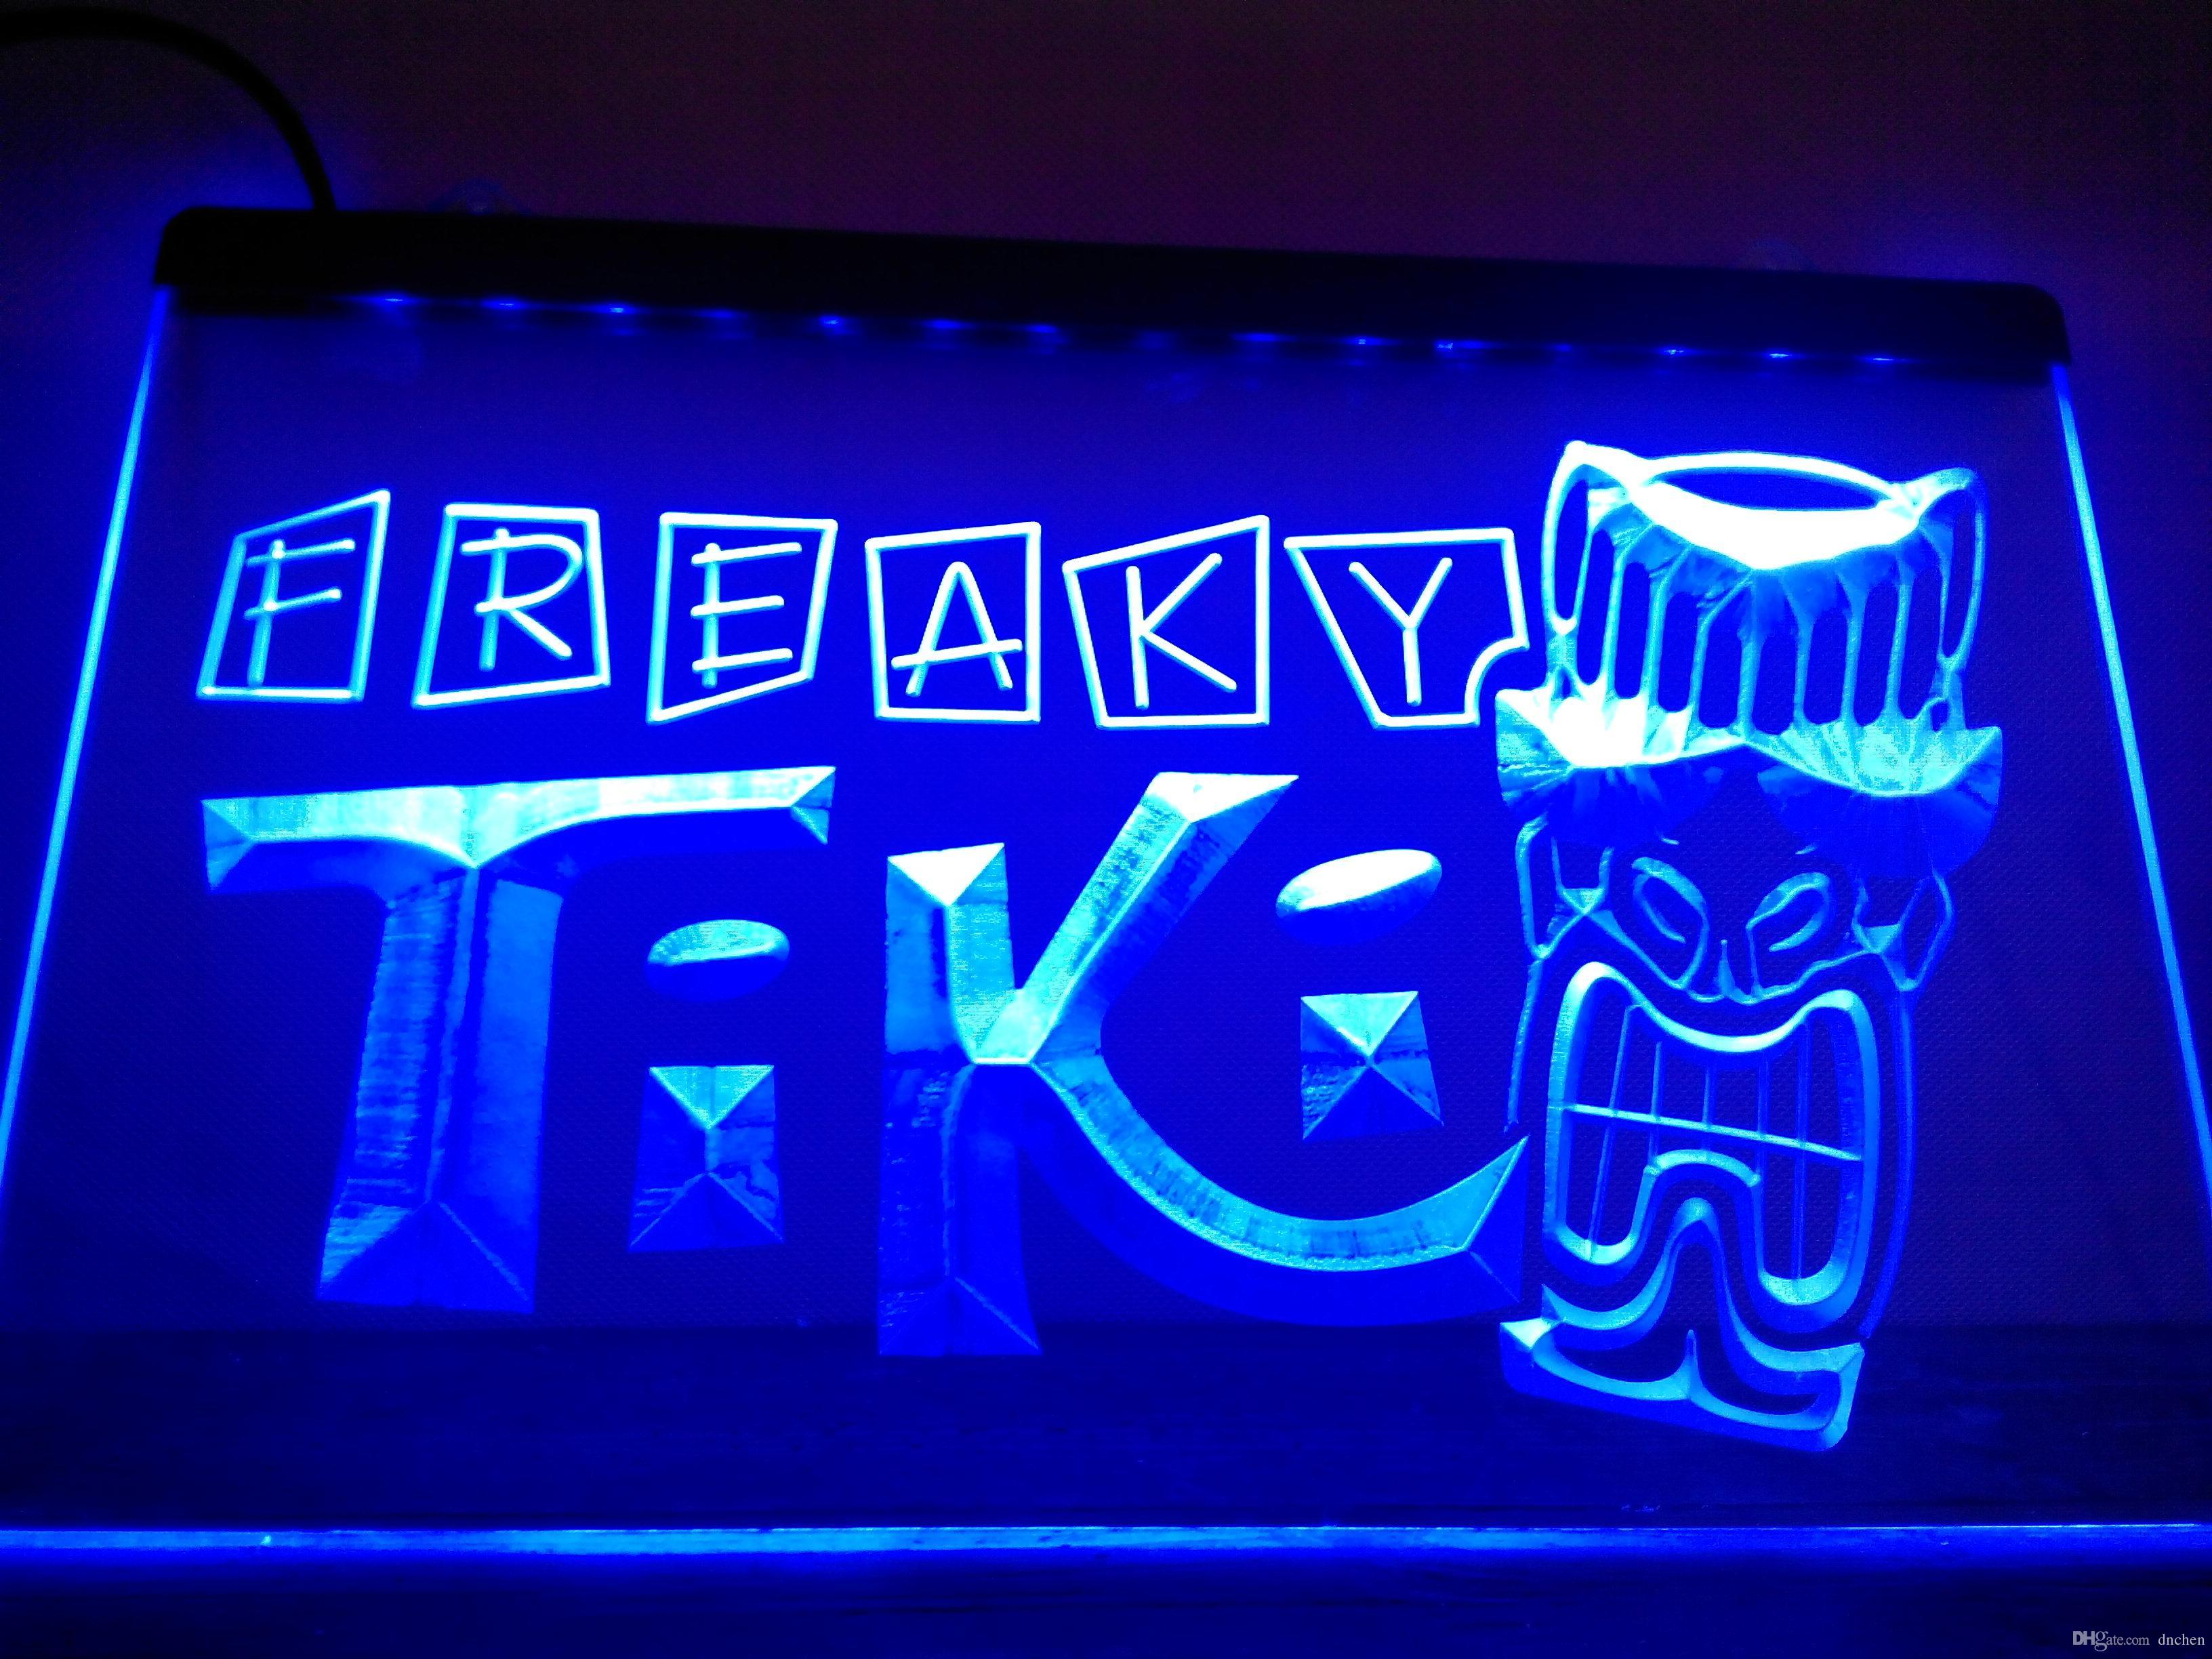 Lm092 b freaky tiki bar mask pub beer neon light signled light sign lm092 b freaky tiki bar mask pub beer neon light signled light sign led strip lighting kitchen 9v led strip from dnchen 885 dhgate aloadofball Image collections